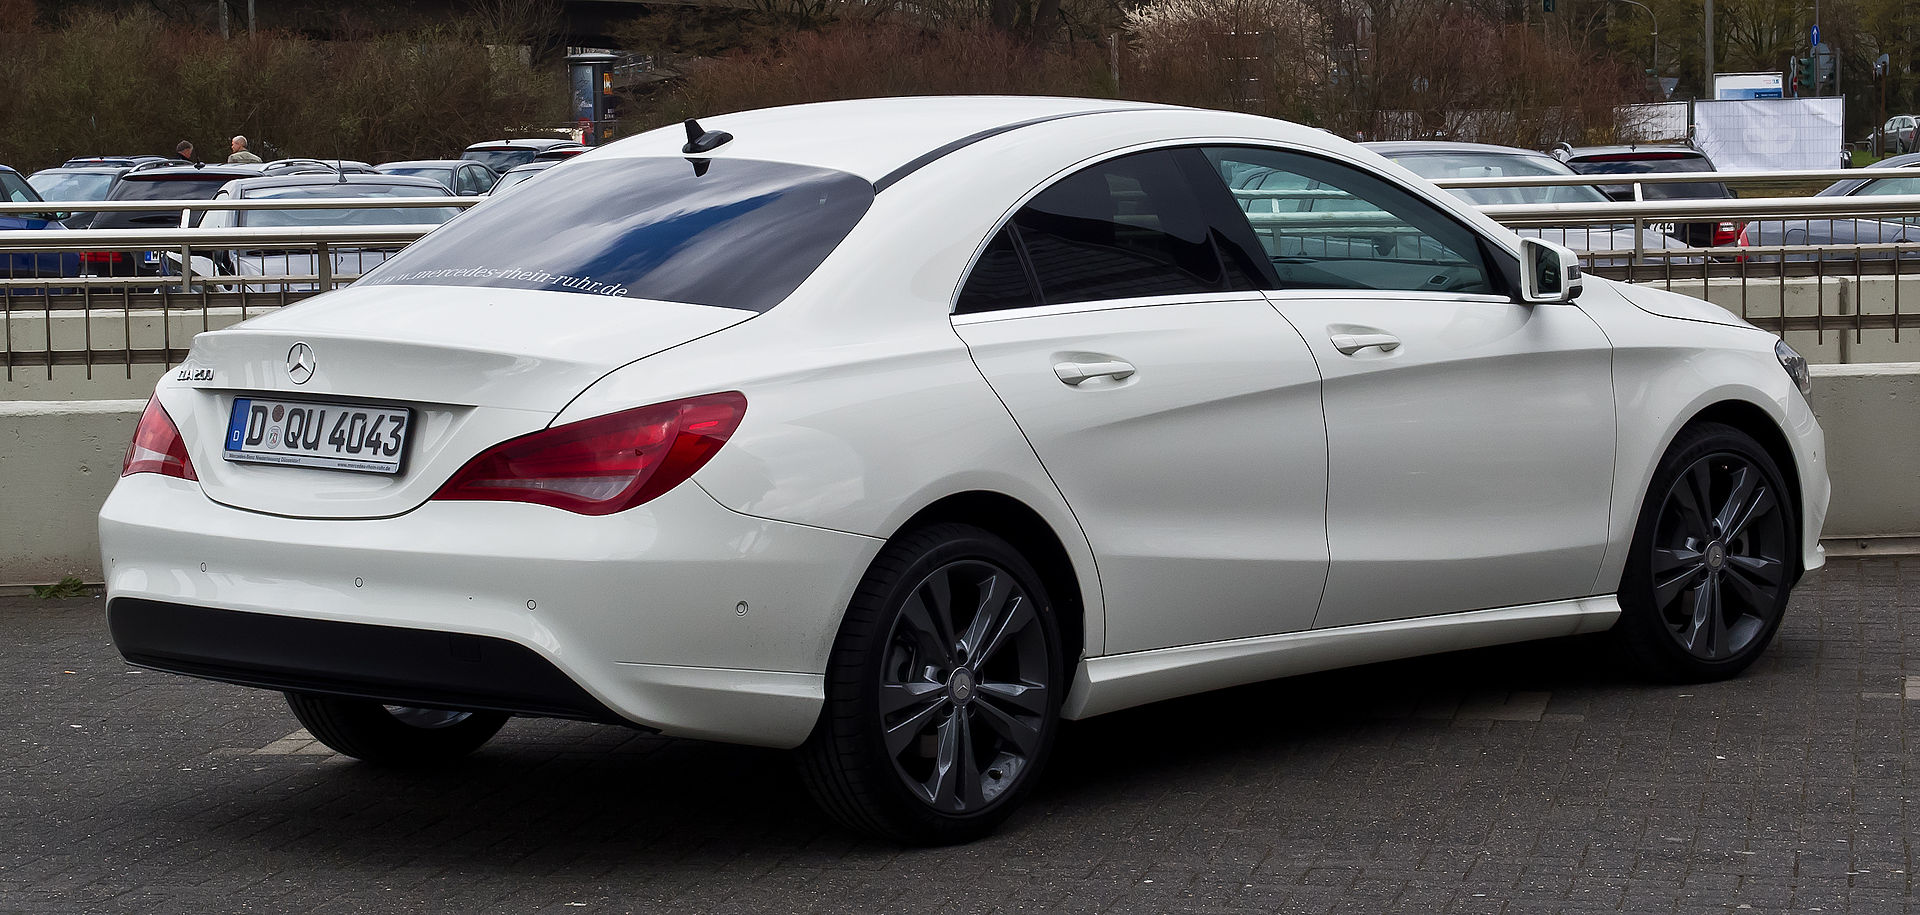 Mercedes Amg C Coup Ef Bf Bd Wikimini